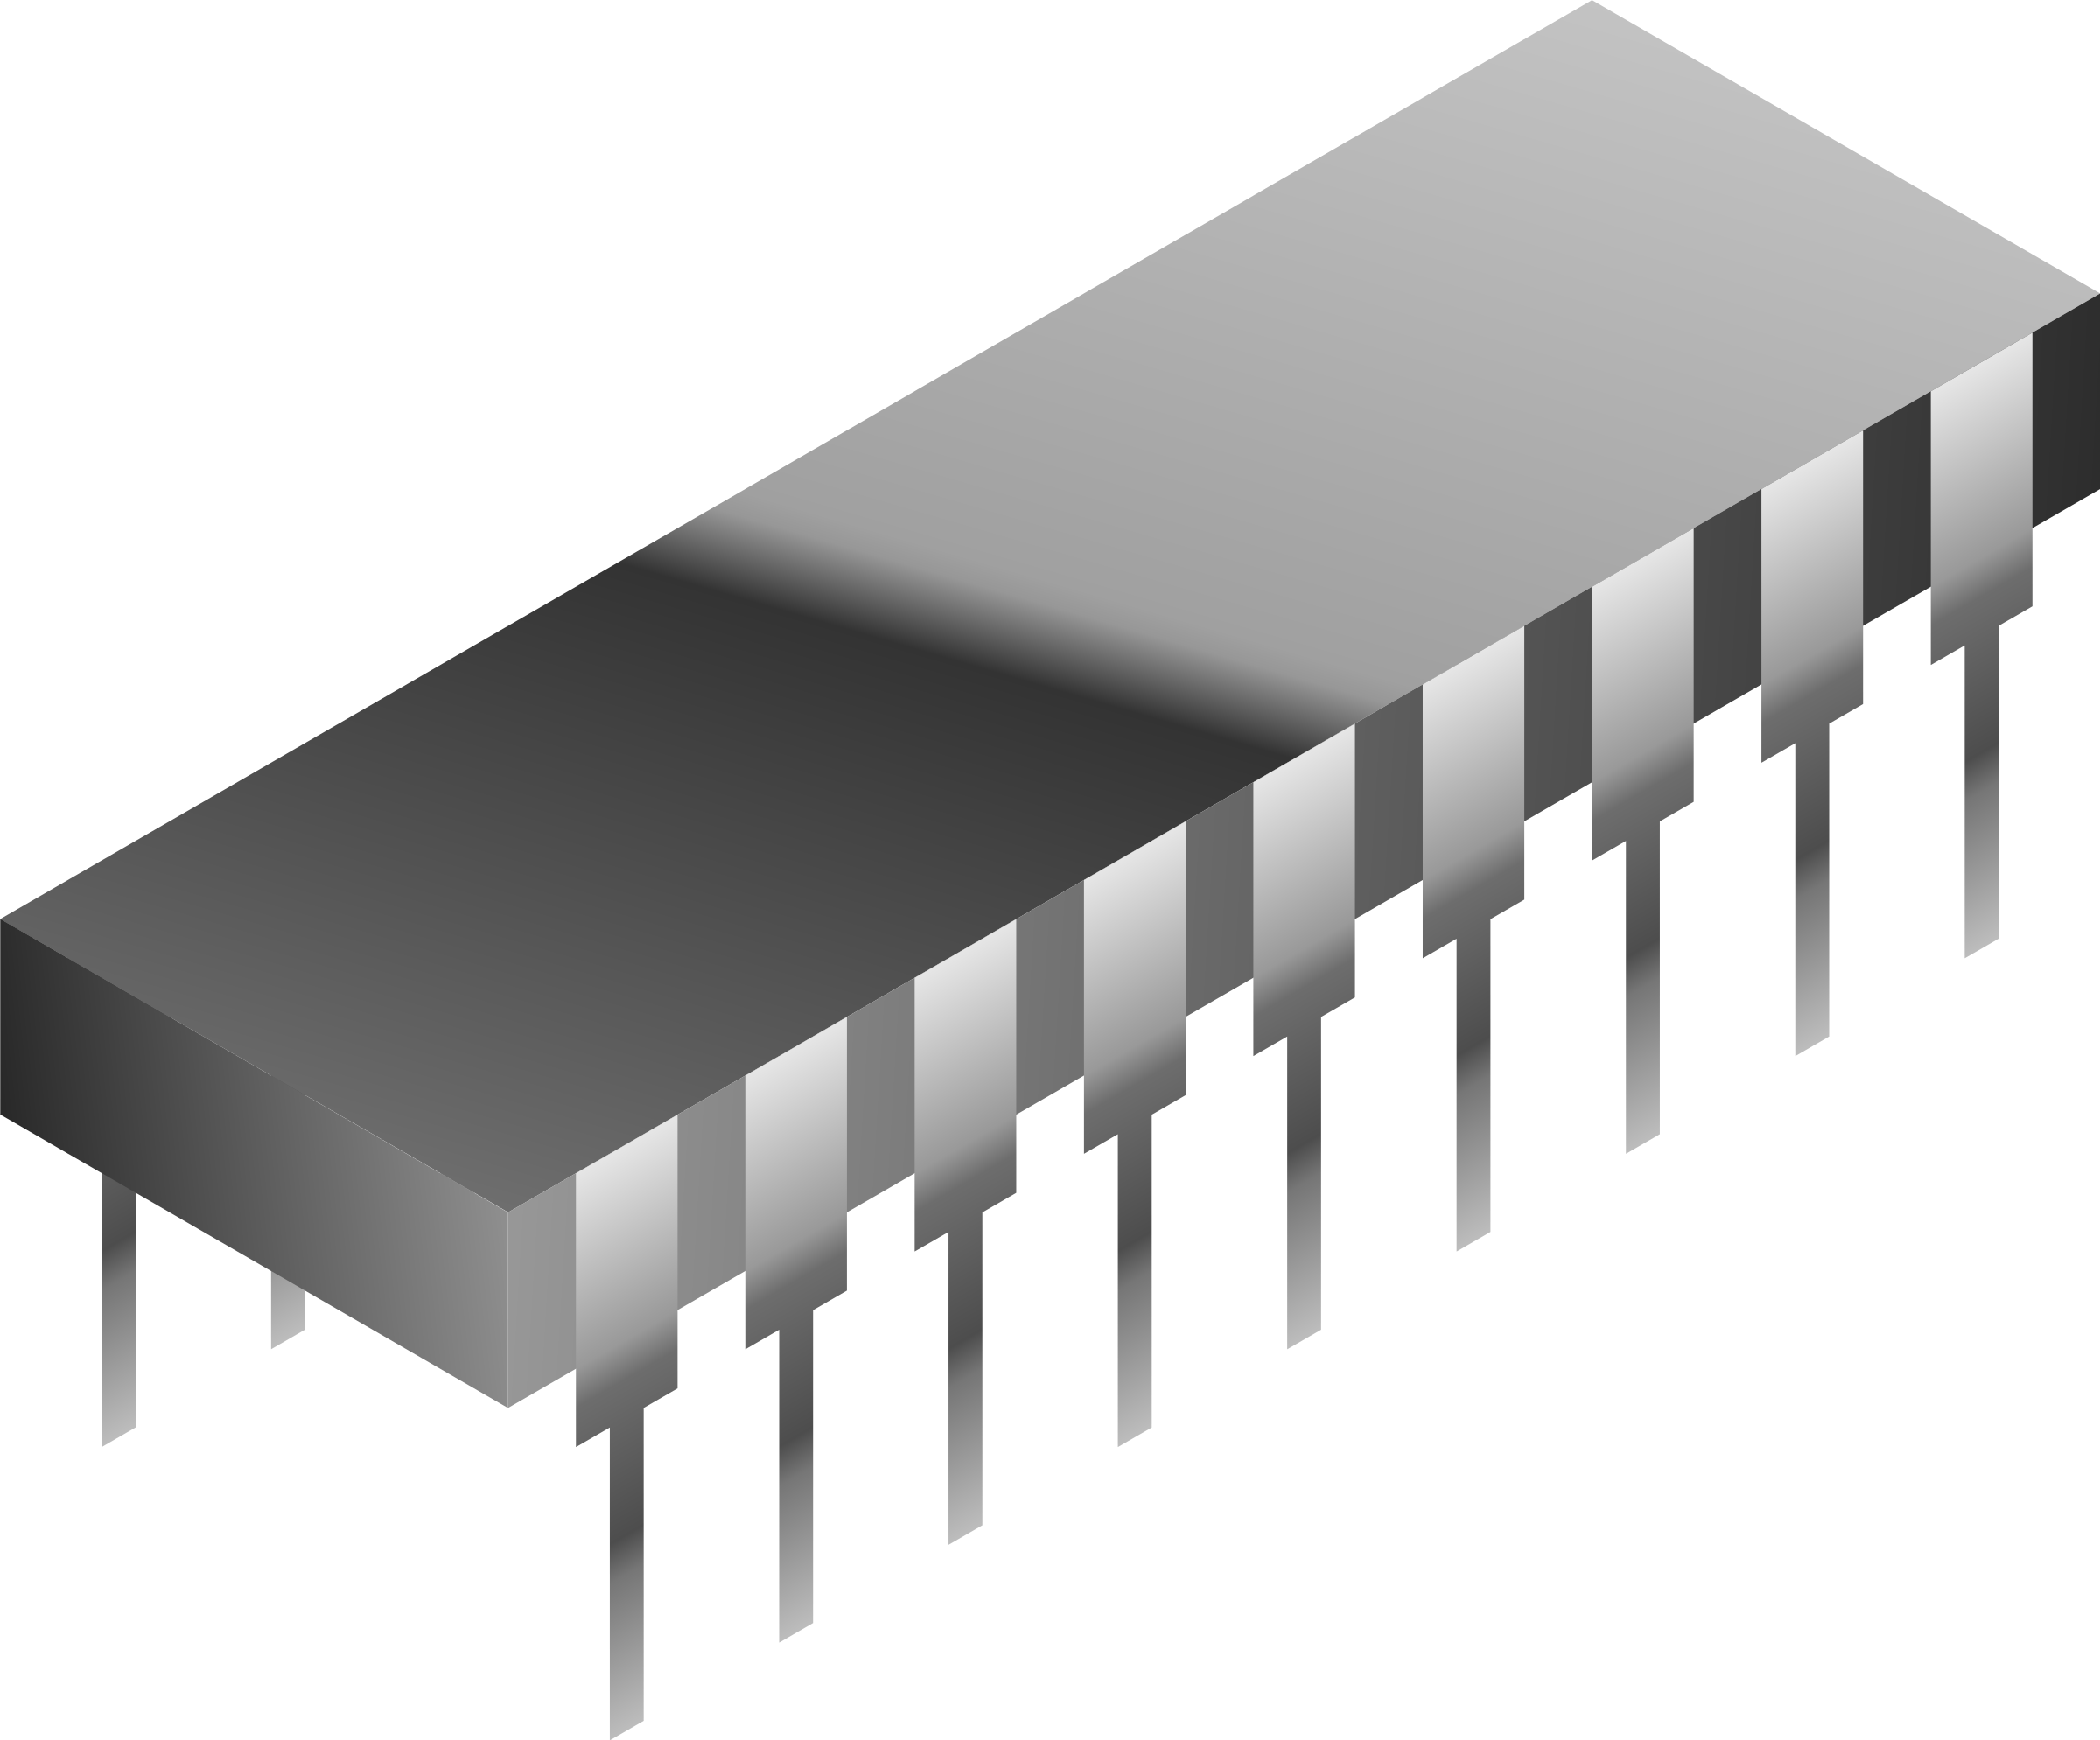 Integrated circuit by jhnri4